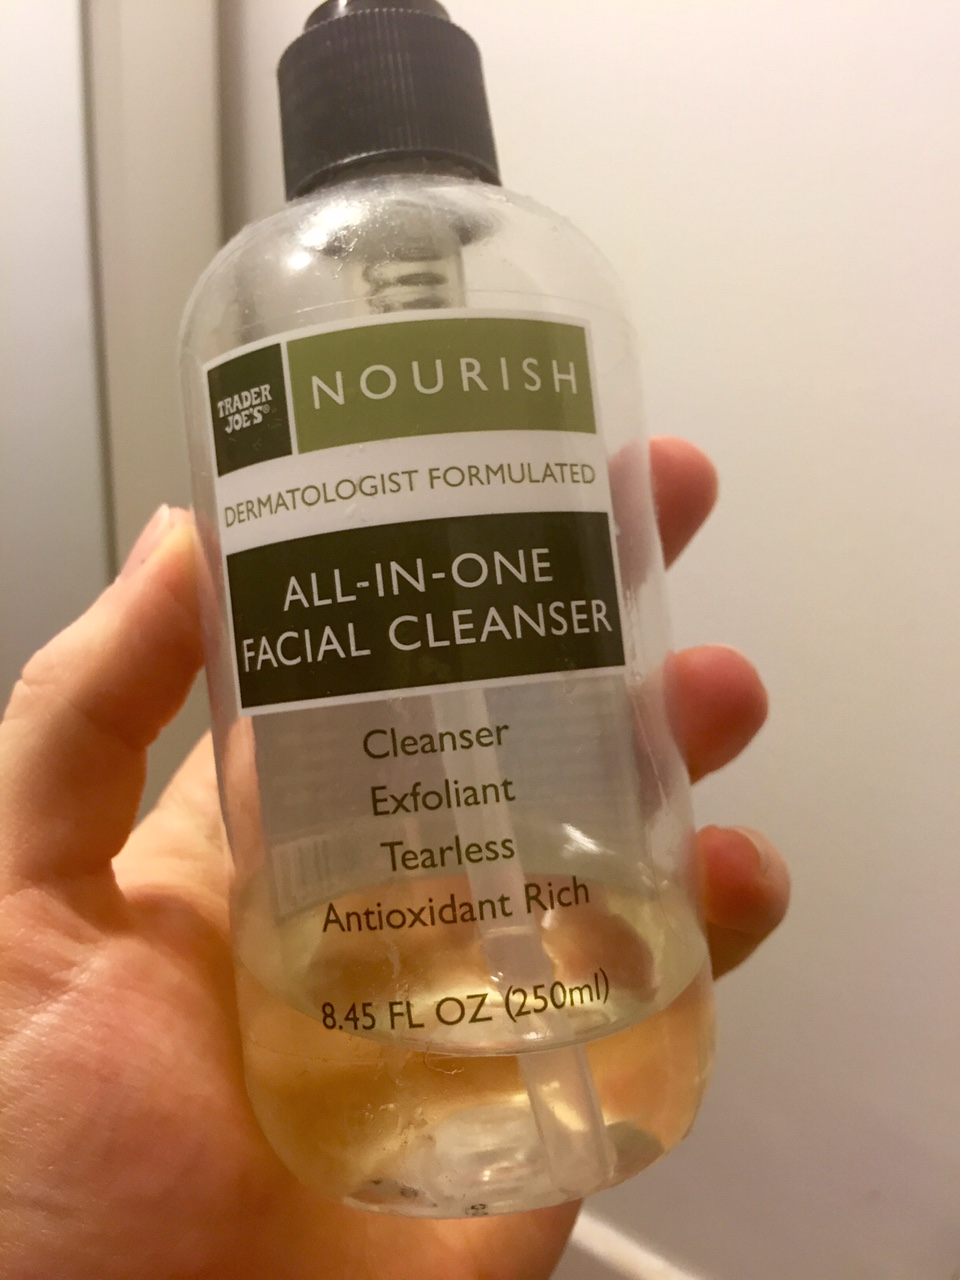 Nourish All-In-One Facial Cleanser by Trader Joe's #13